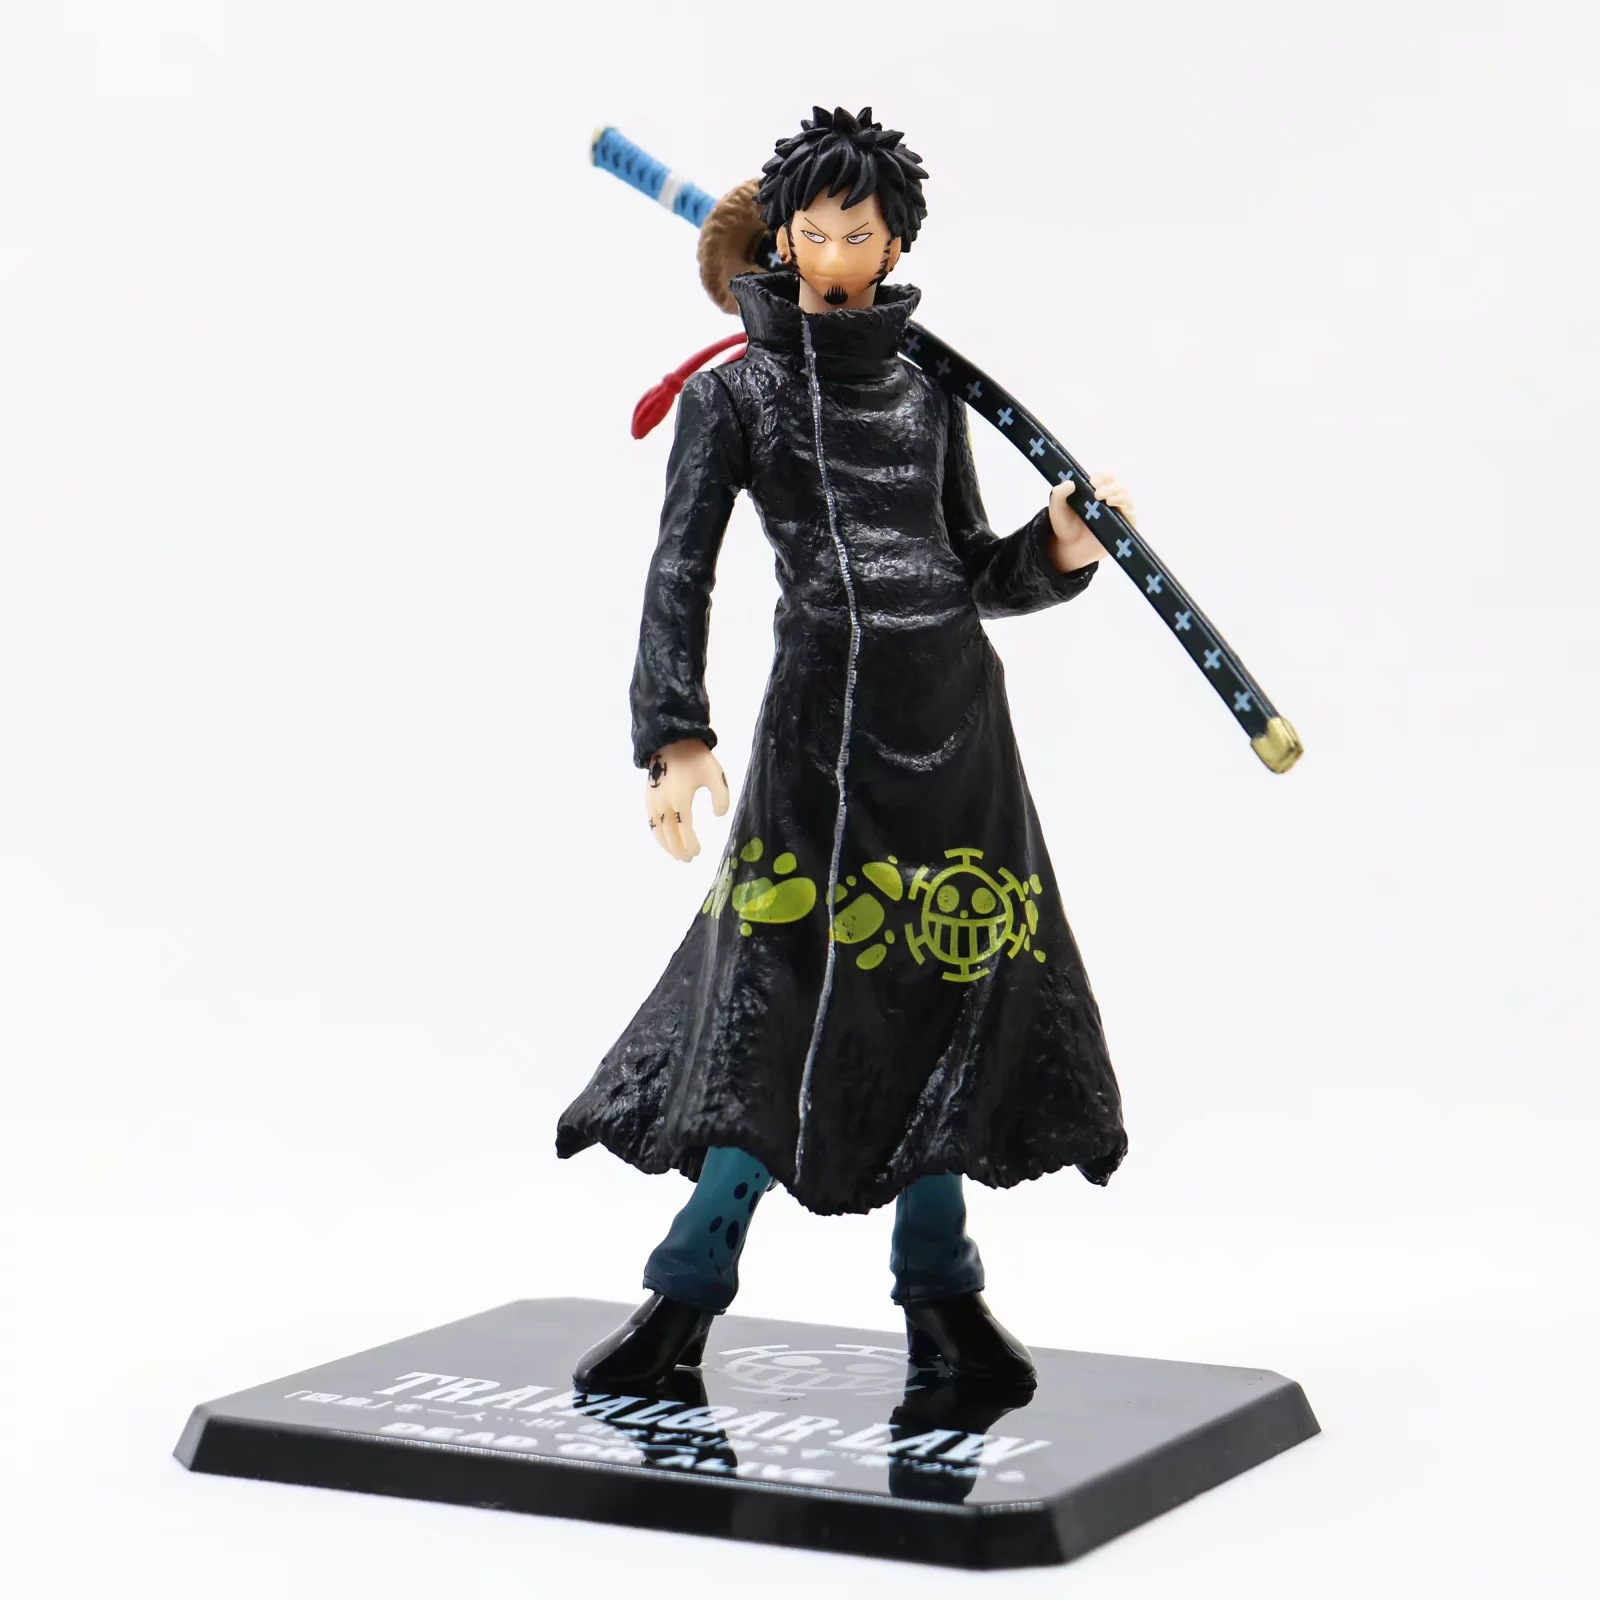 17CM pvc Japanese anime figure One Piece Trafalgar Law ZERO action figure collectible model toys for boys